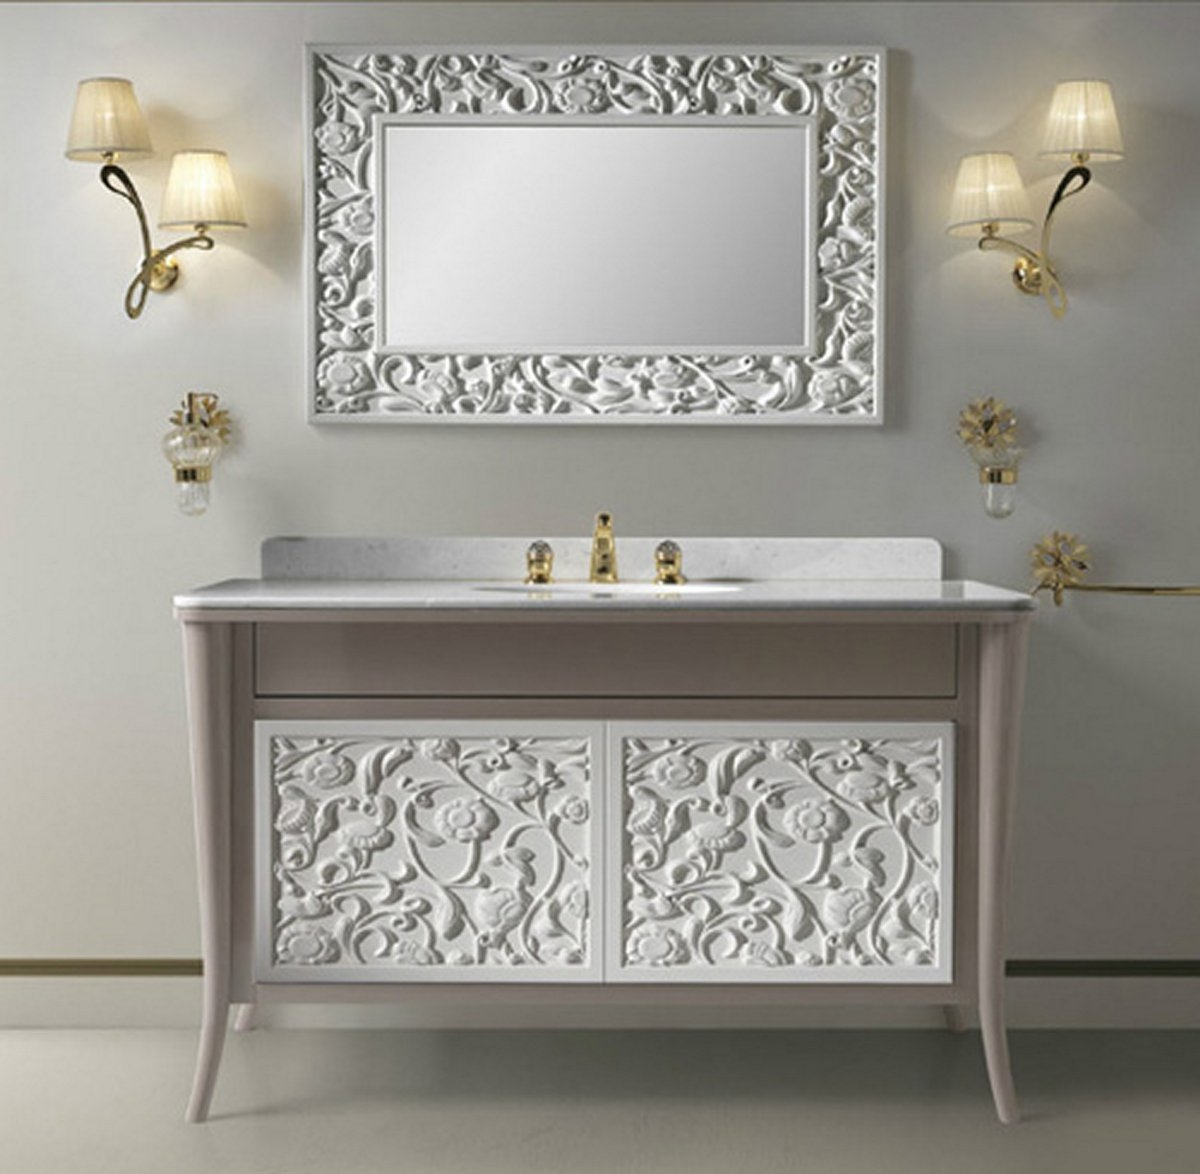 Permalink to Antique Style Bathroom Mirrors